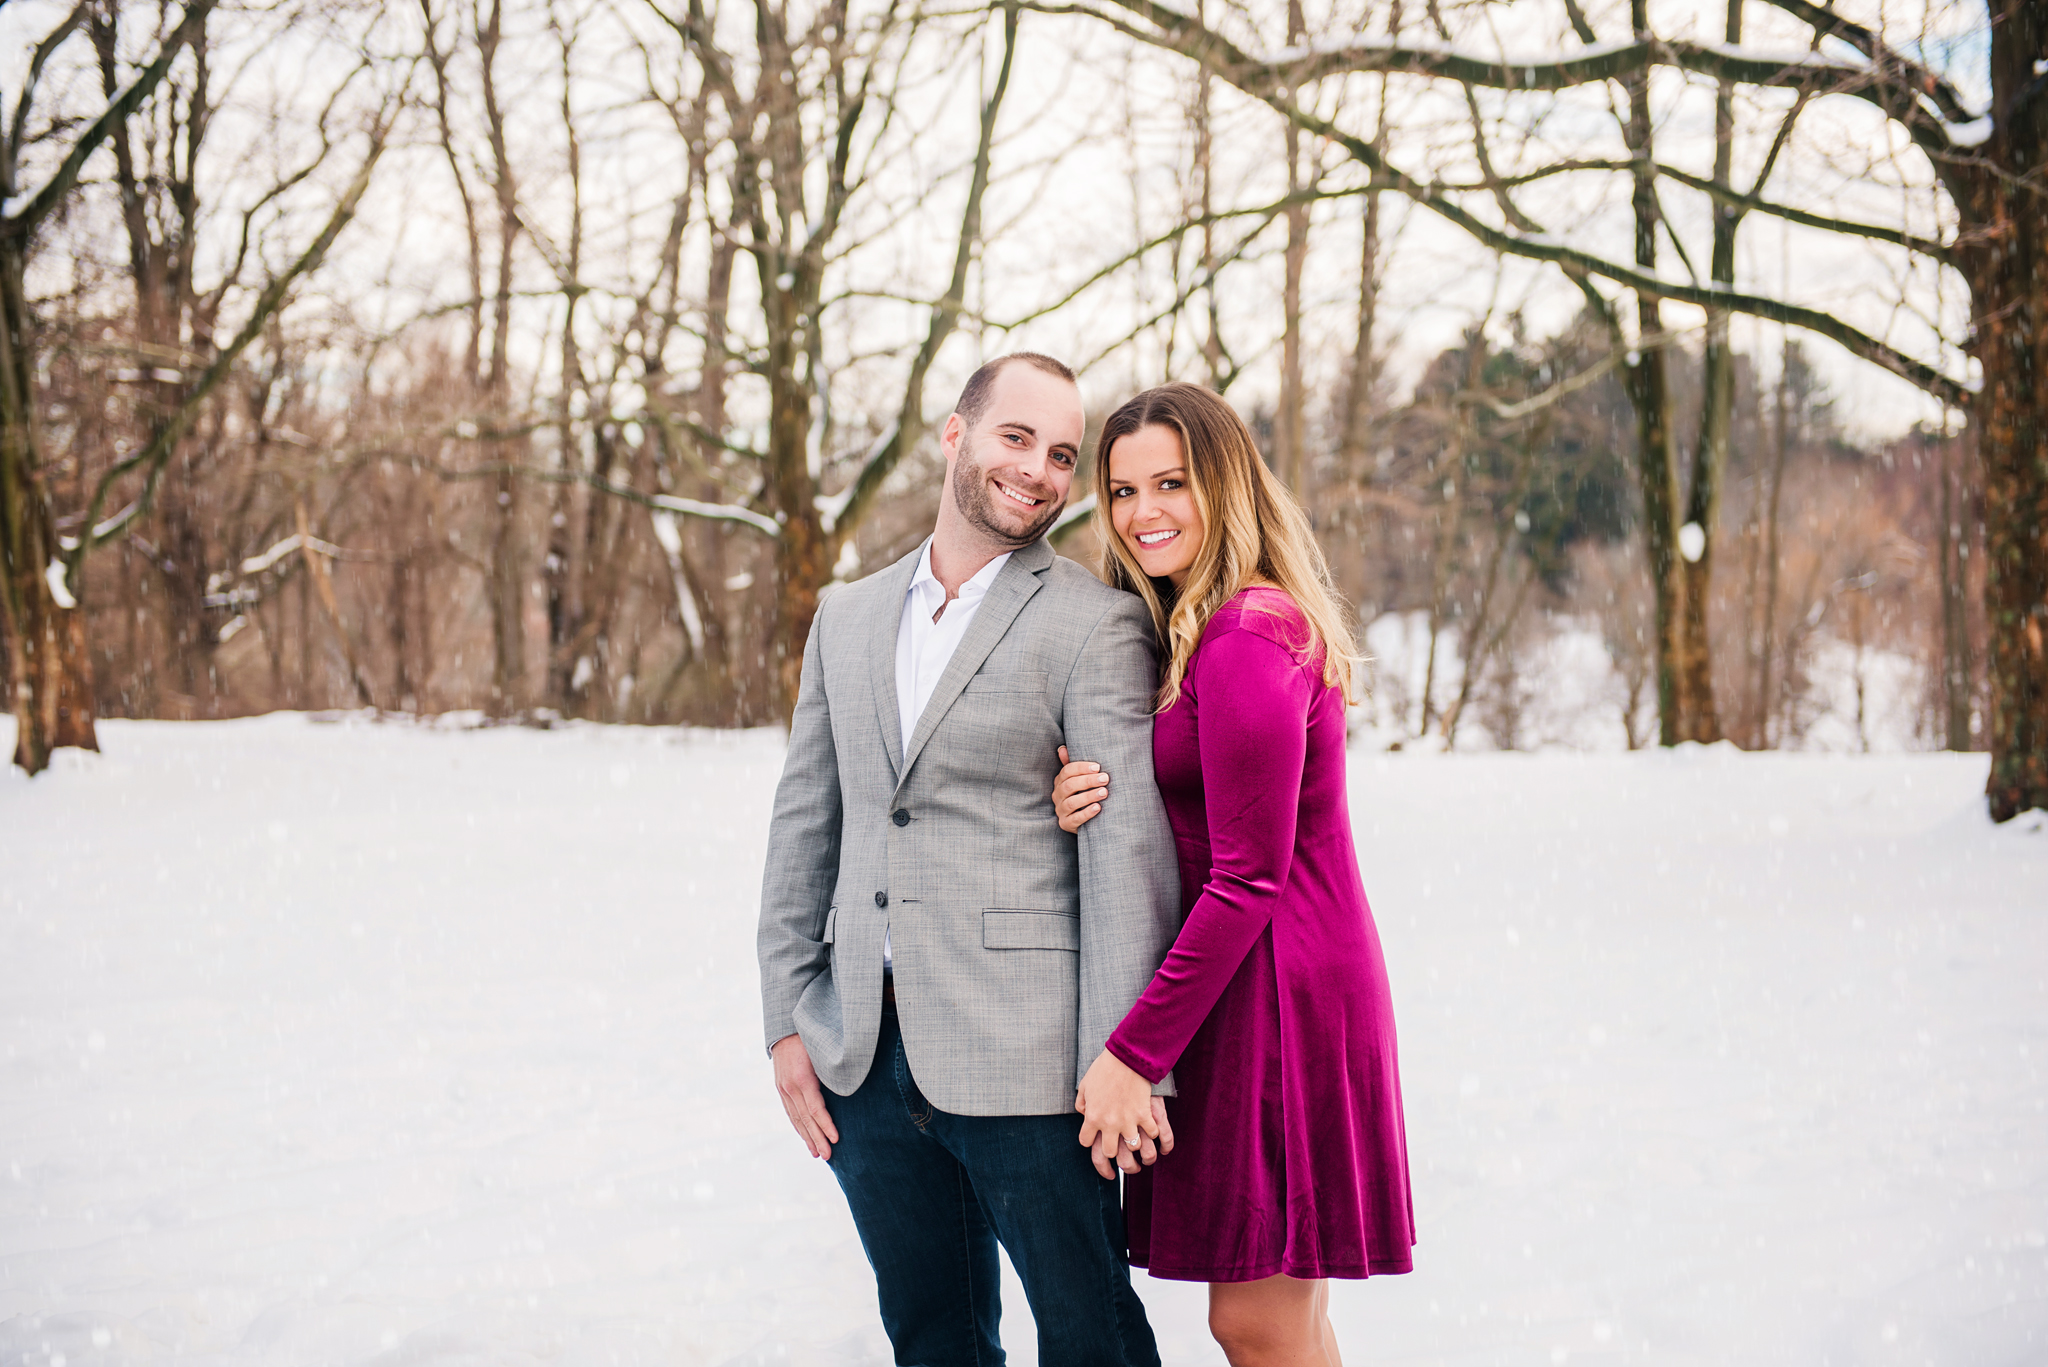 Webster_Park_Engagement_Session_Rochester_NY_photographer_DSC_6360.jpg